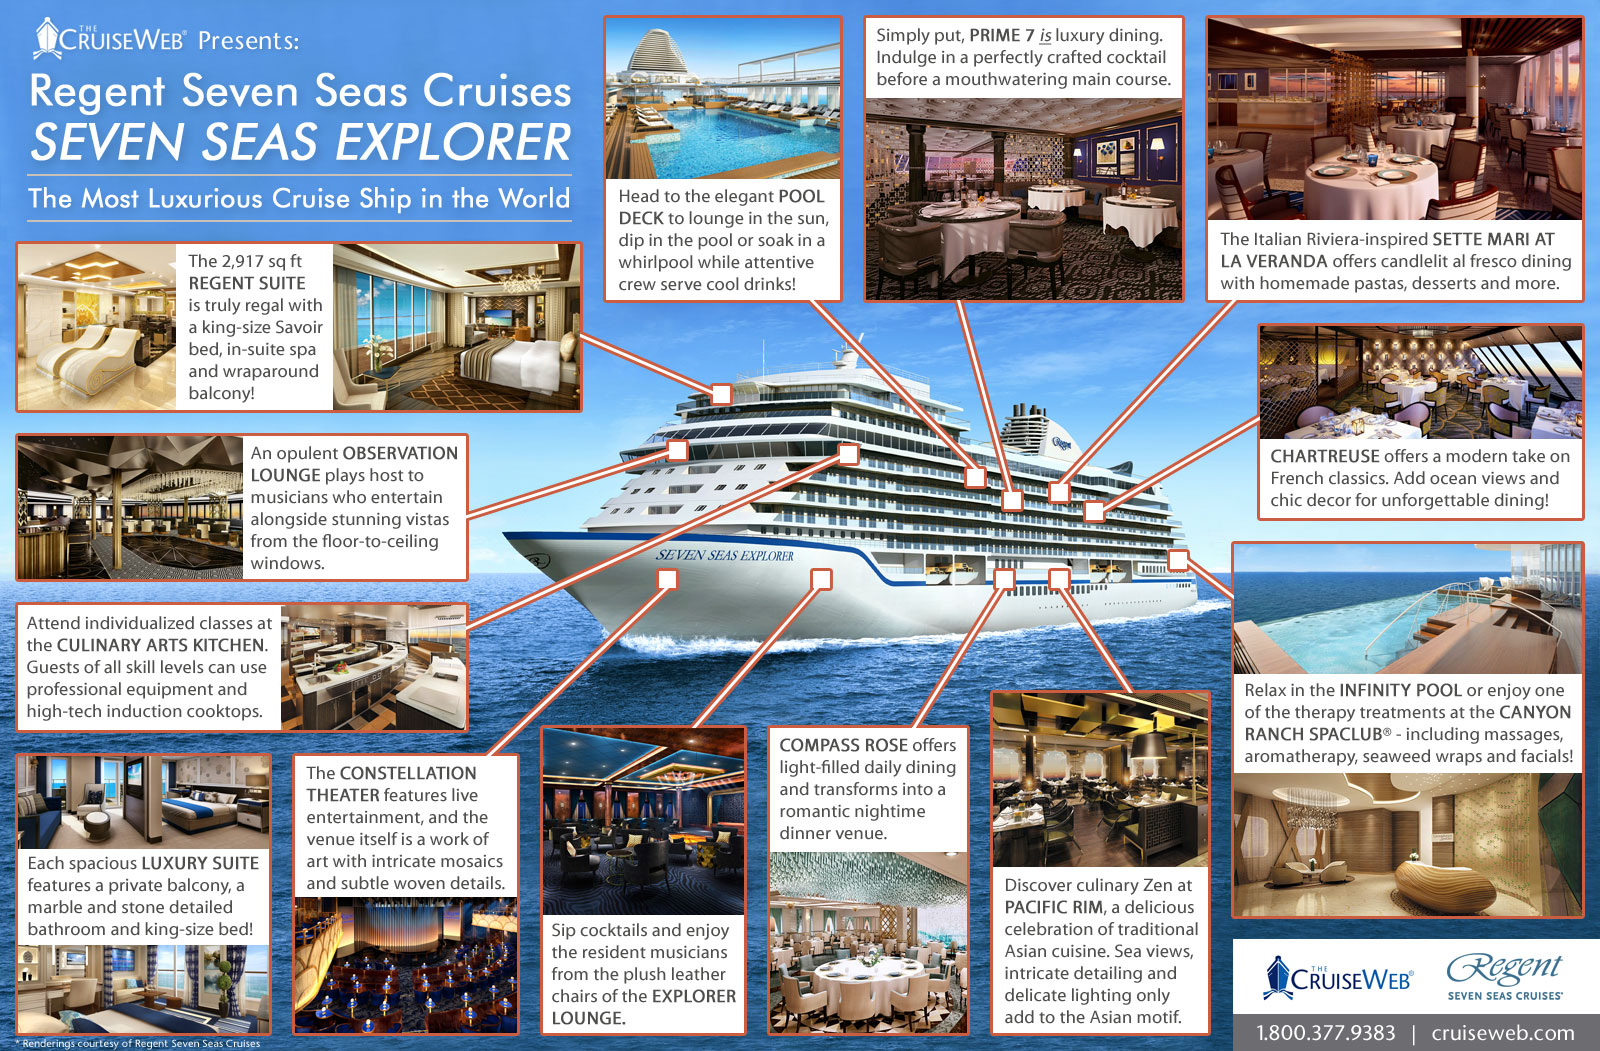 A Brief History of the Cruise Line Industry